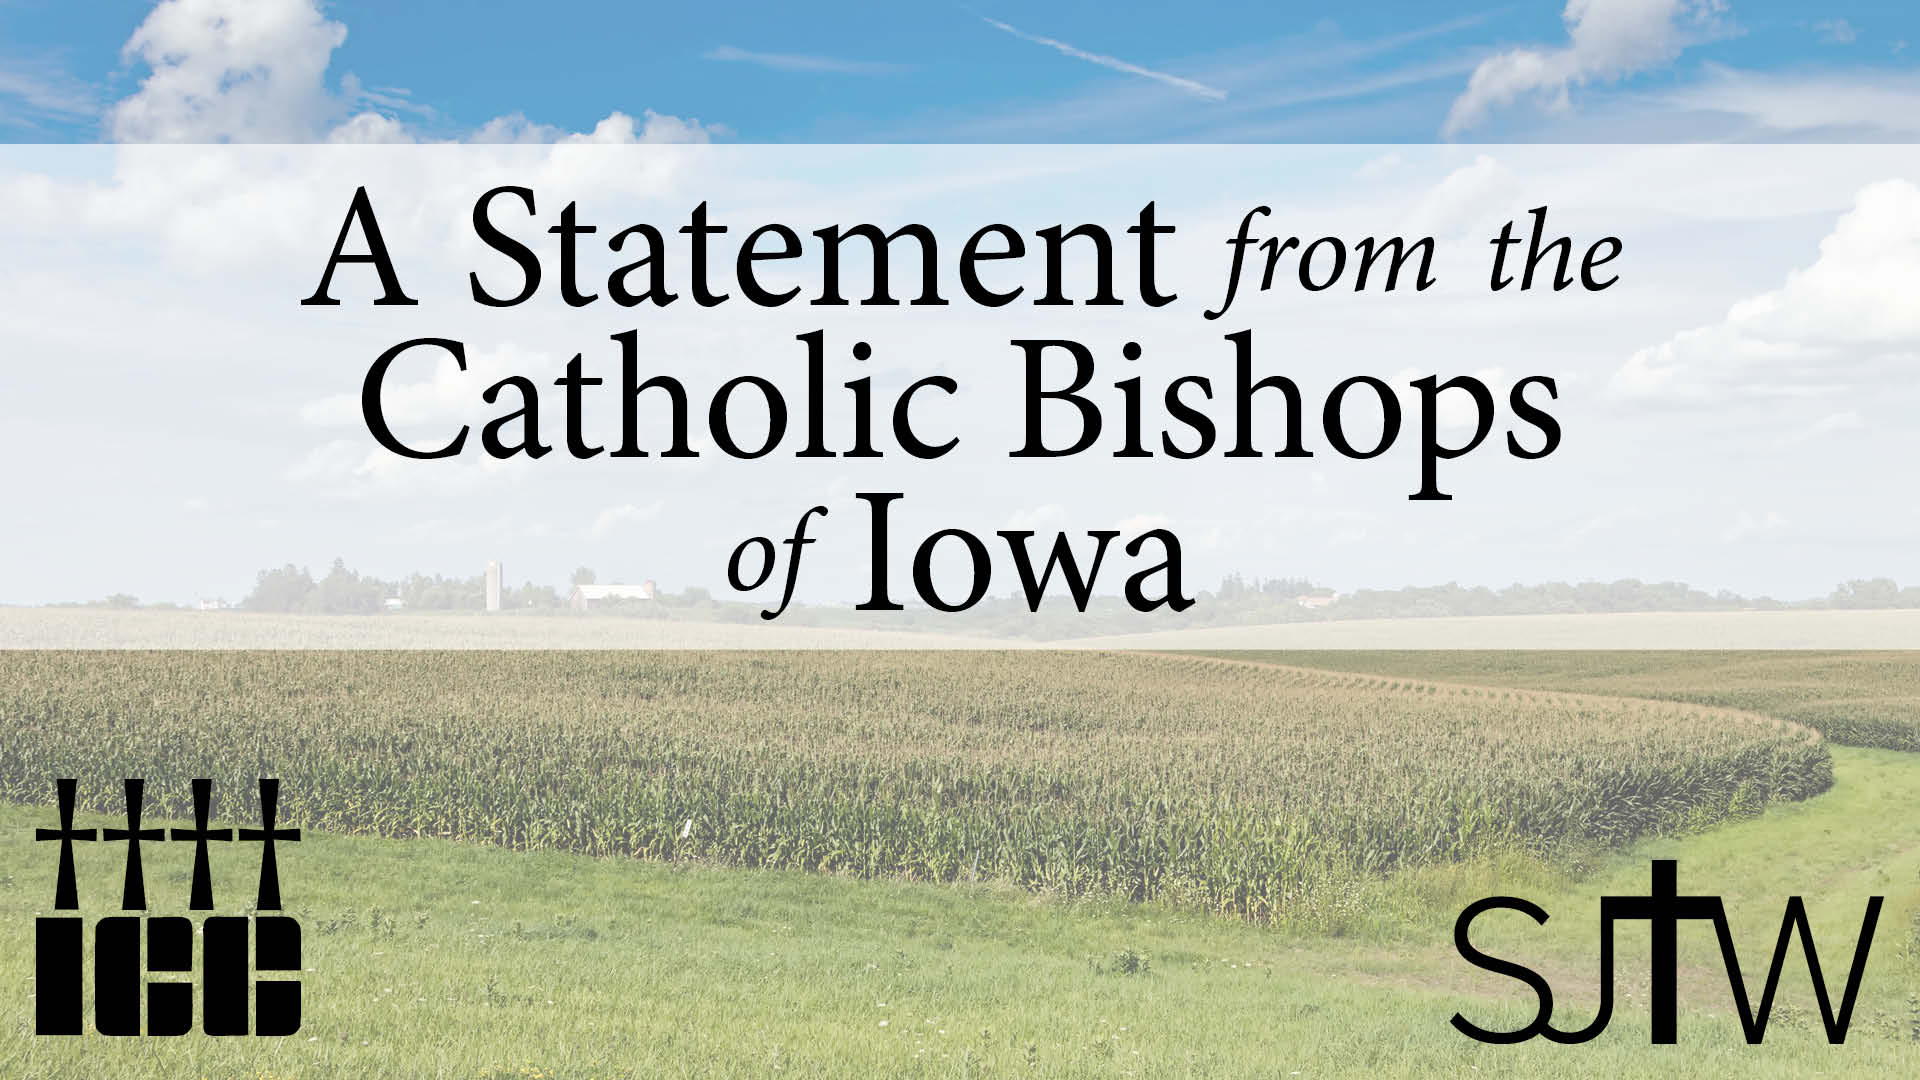 Iowa Catholic Bishops Support DACA & Asylum Seekers